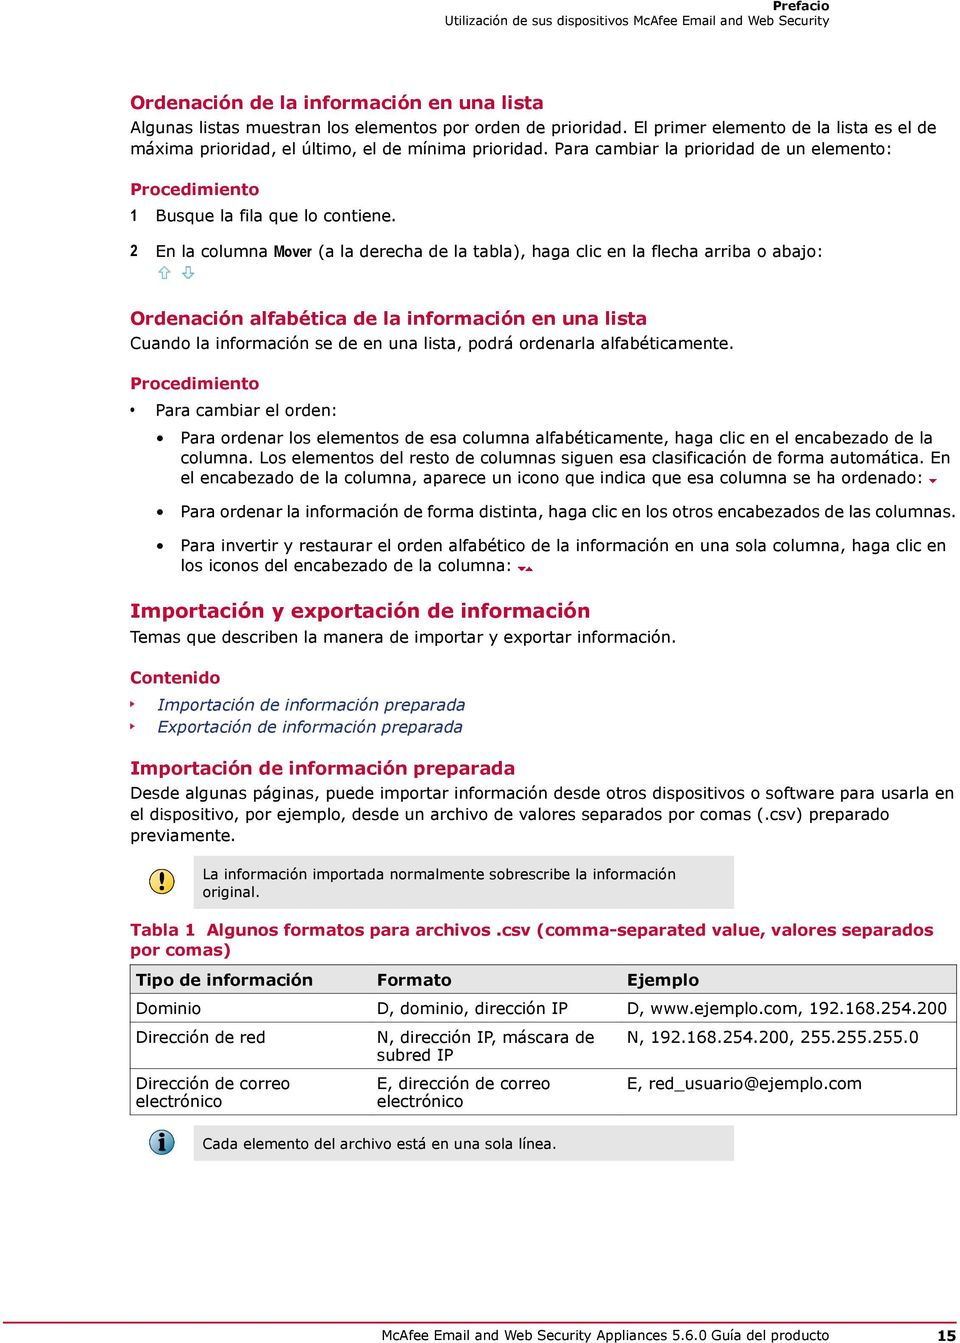 Guía del producto. McAfee and Web Security Appliances PDF